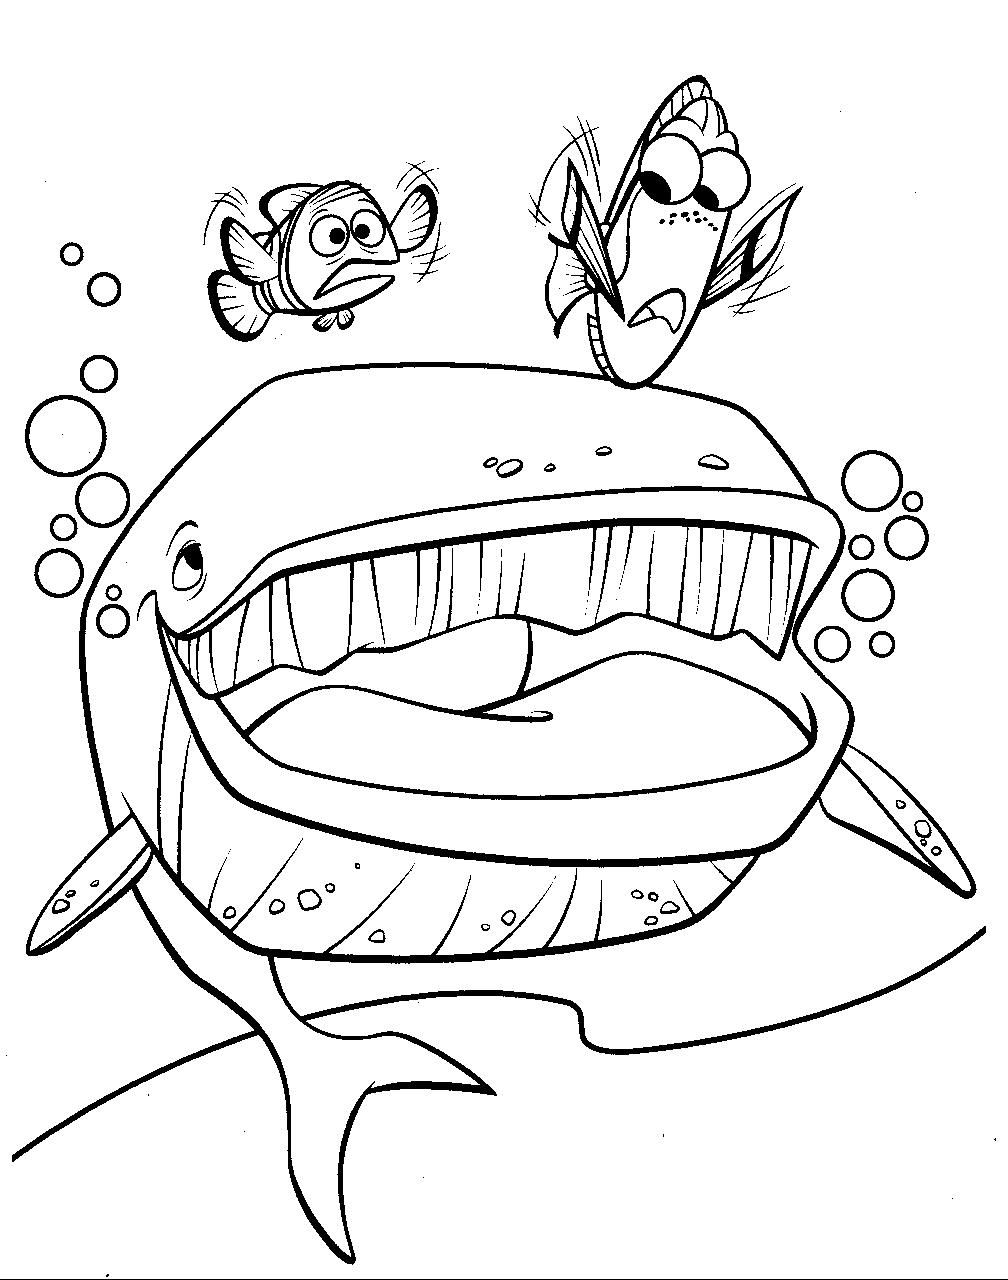 Nemo And The Big Whale Whale Coloring Pages Nemo Coloring Pages Finding Nemo Coloring Pages